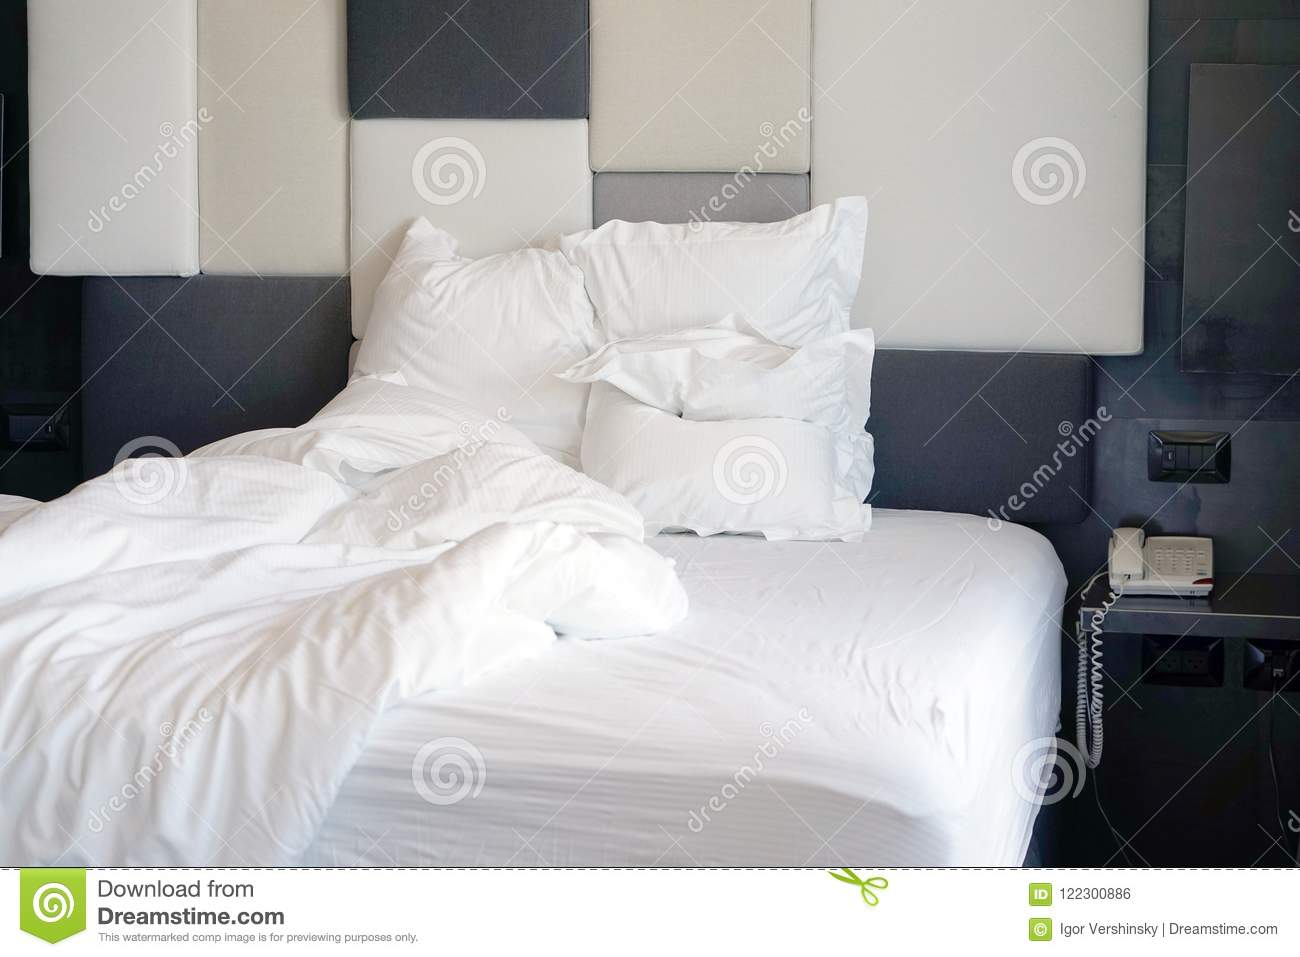 Dirty Bed In The Hotel Dirty Bed Pillow Blanket Room Stock Photo